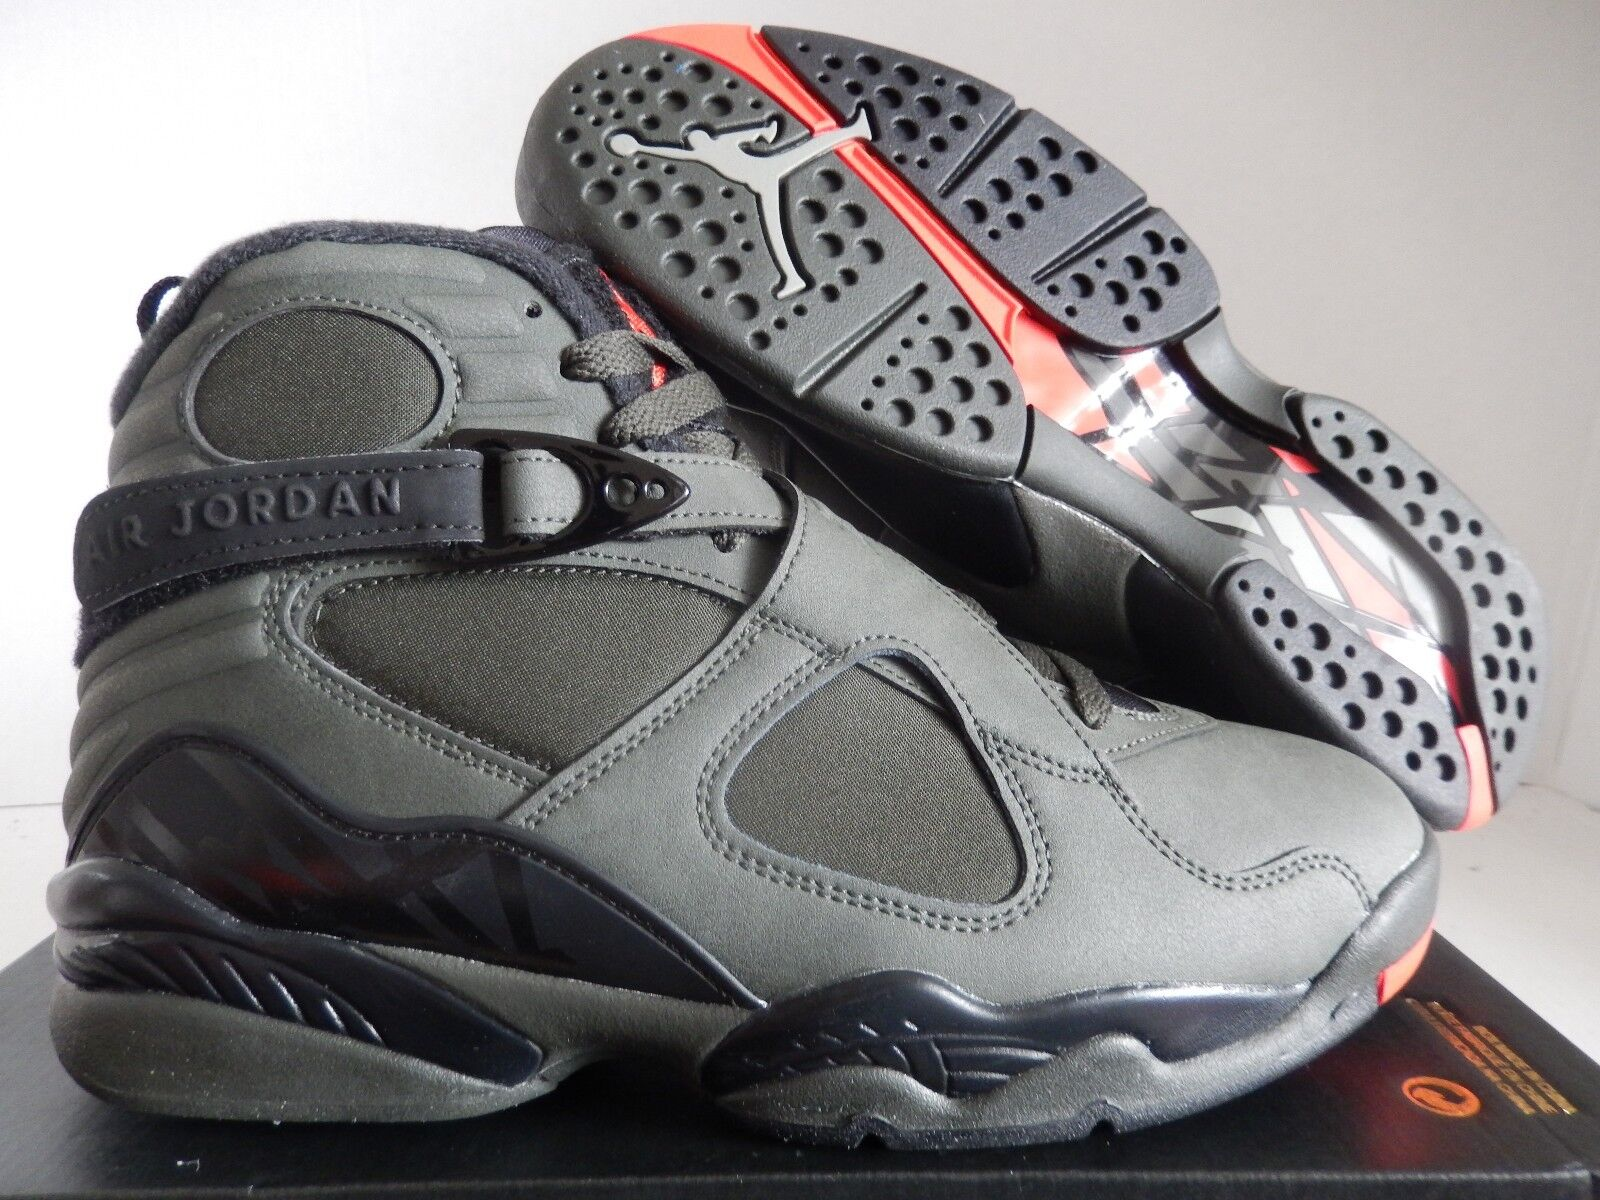 NIKE AIR JORDAN 8 SZ RETRO